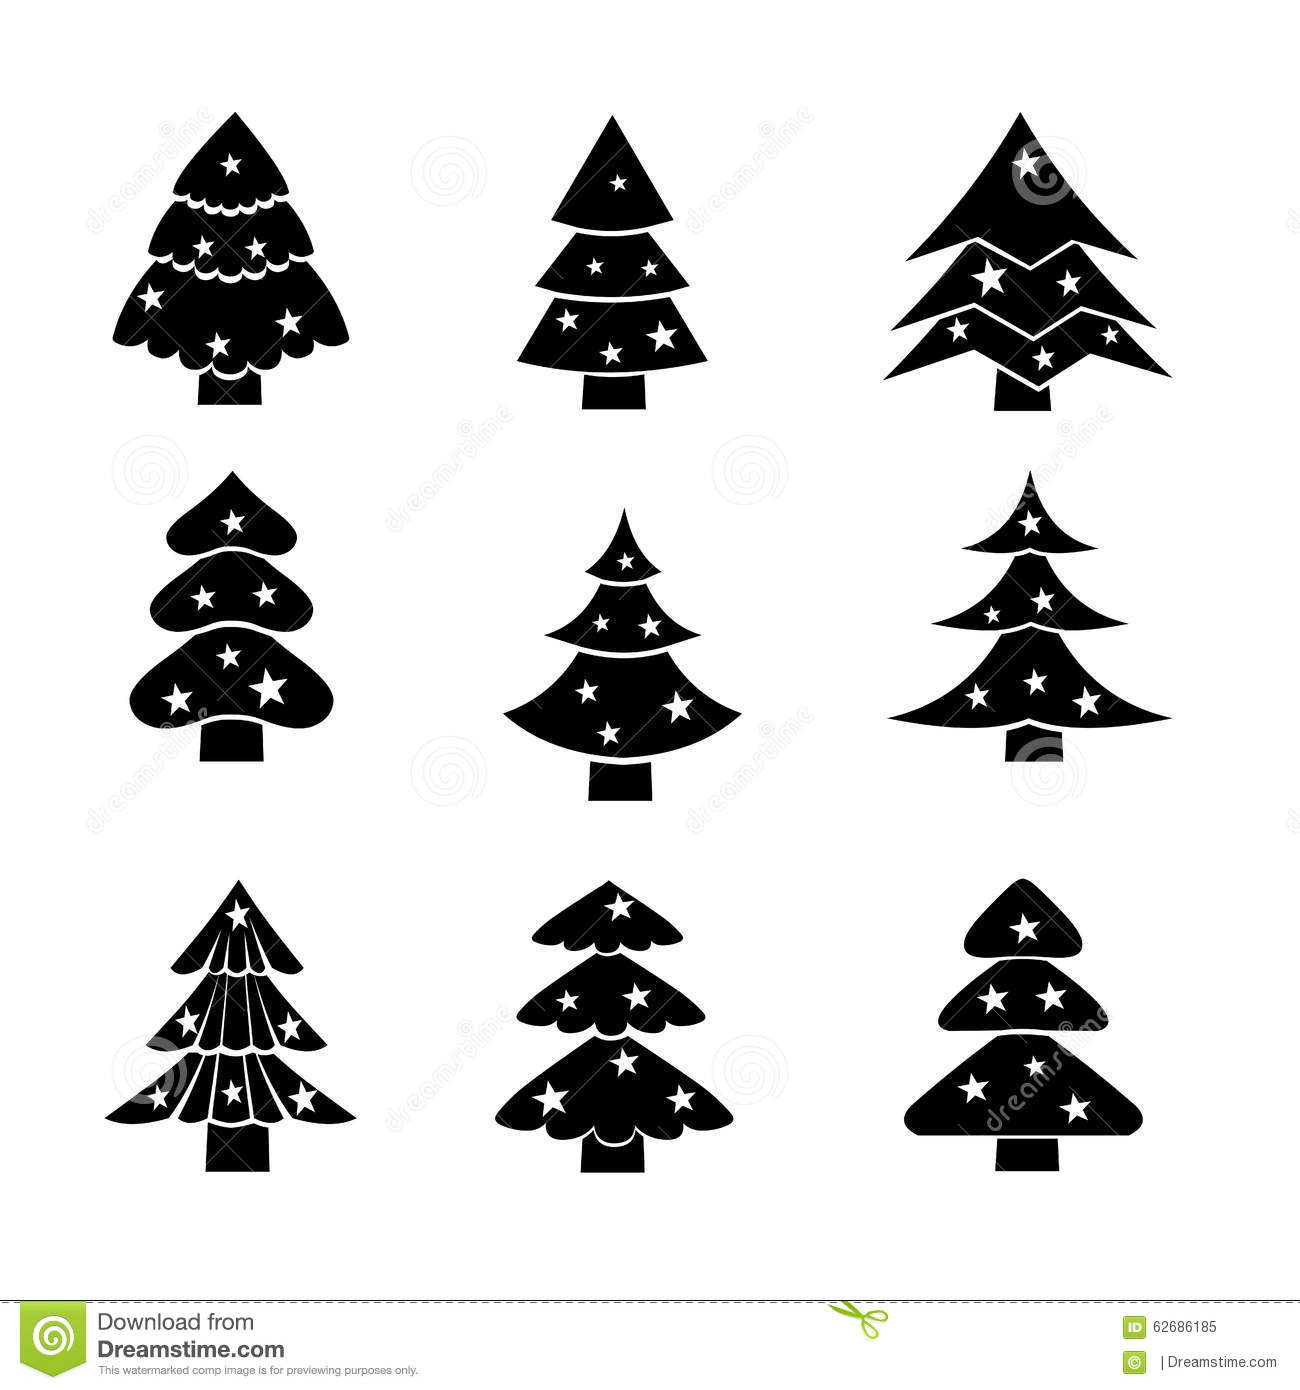 decorated christmas tree black silhouette illustration stock vector